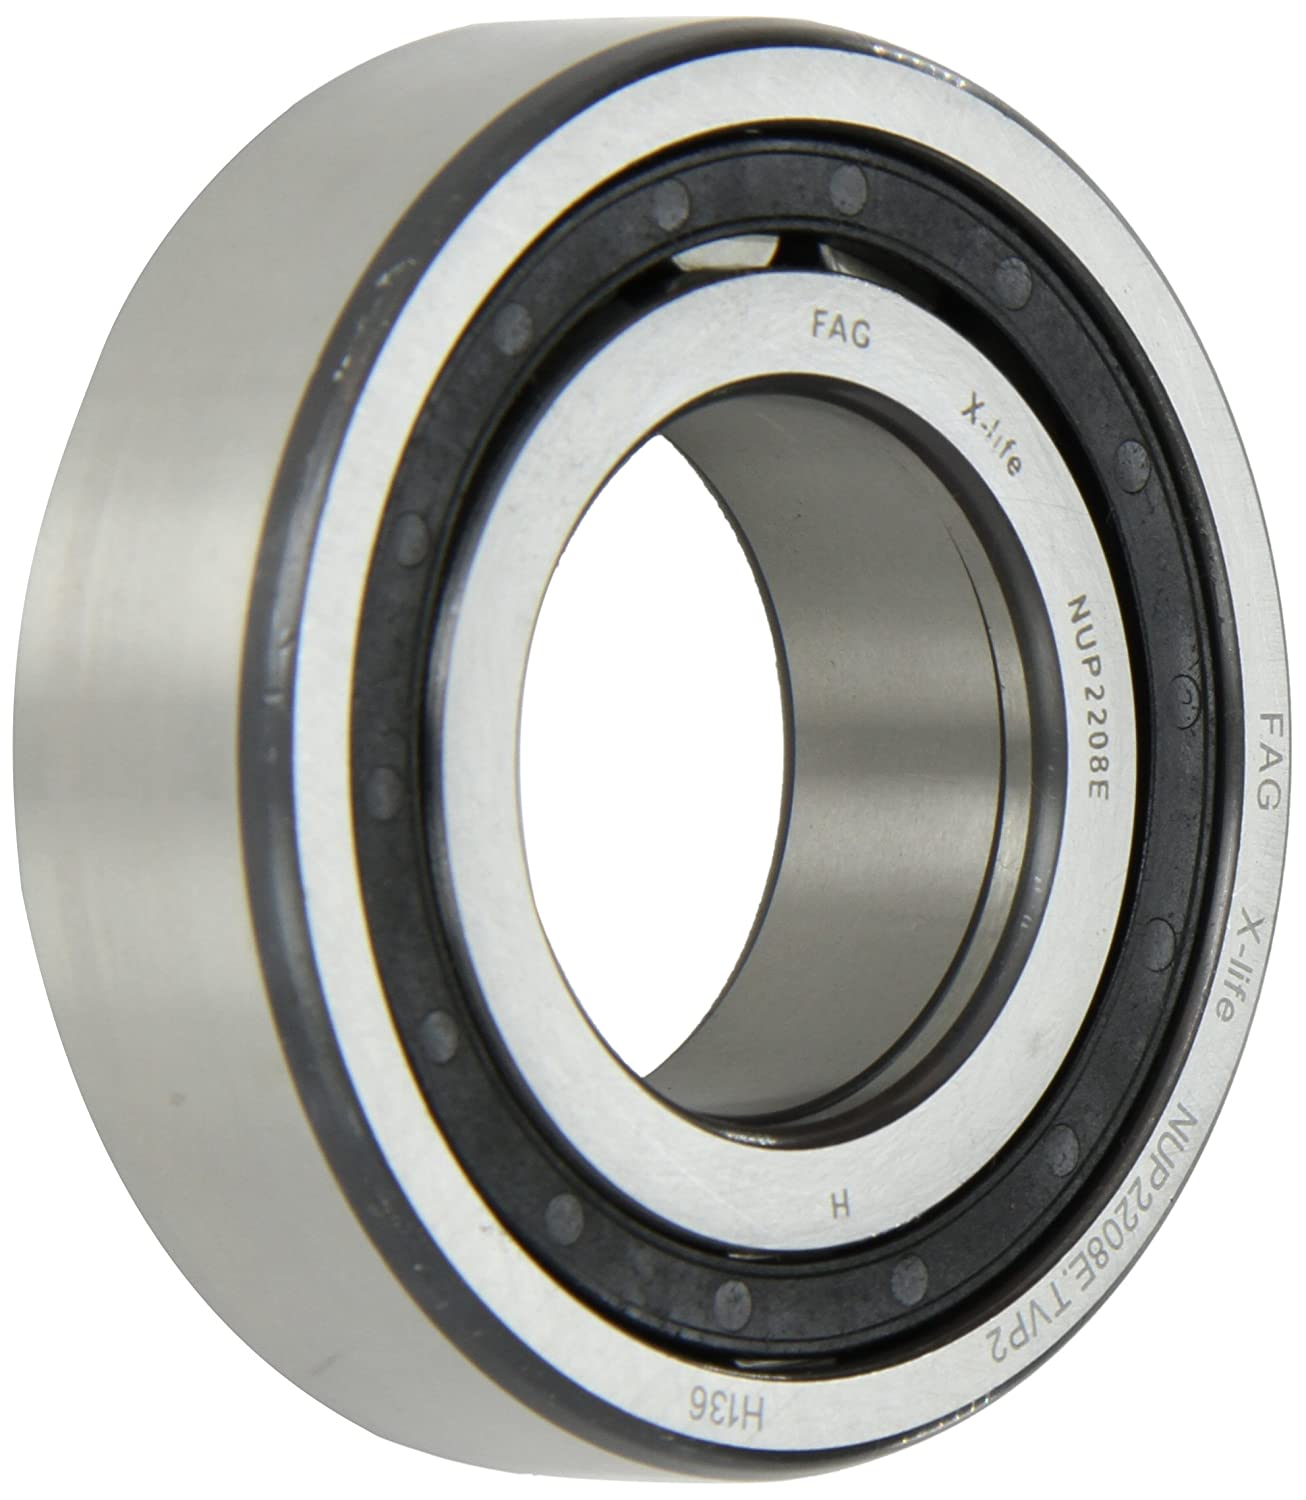 FAG NUP2208E-TVP2 Cylindrical Roller Bearing, Single Row, Straight Bore, Removable Inner Ring, Two Piece, High Capacity, Normal Clearance, Metric, 40mm ID, 80mm OD, 23mm Width